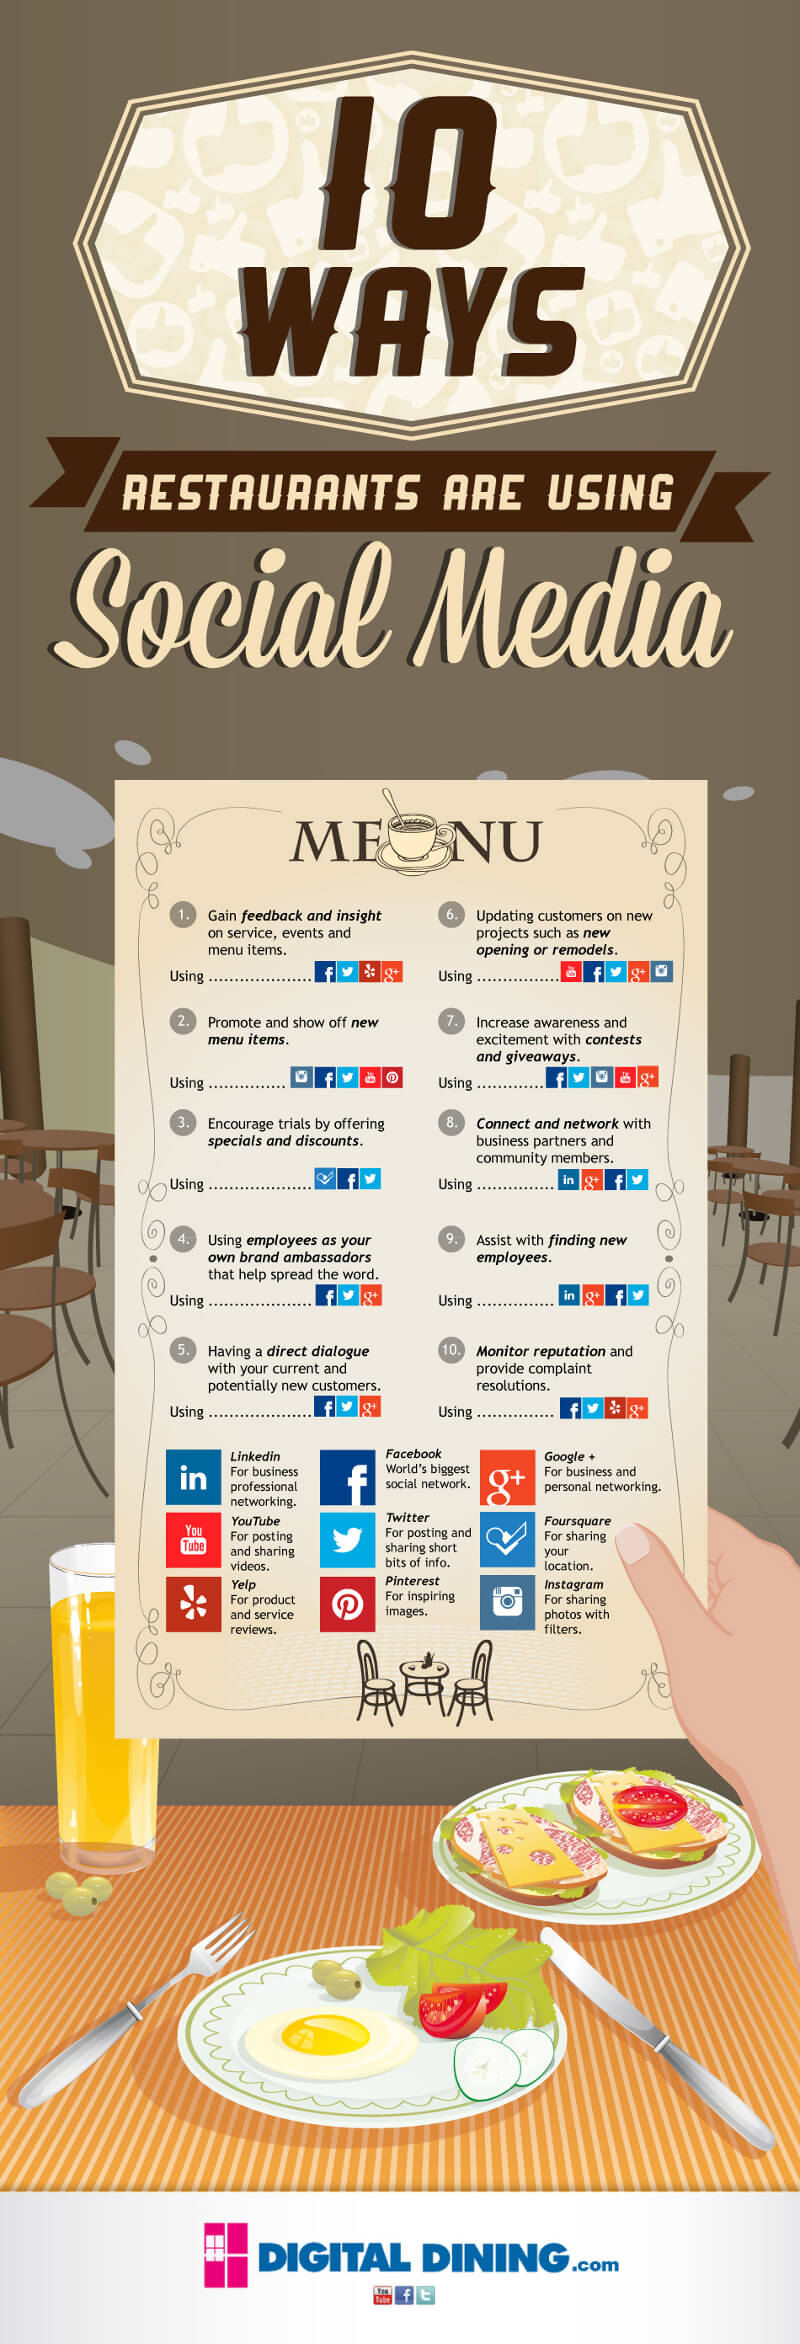 10 Ways Restaurants Are Using Social Media [INFOGRAPHIC]